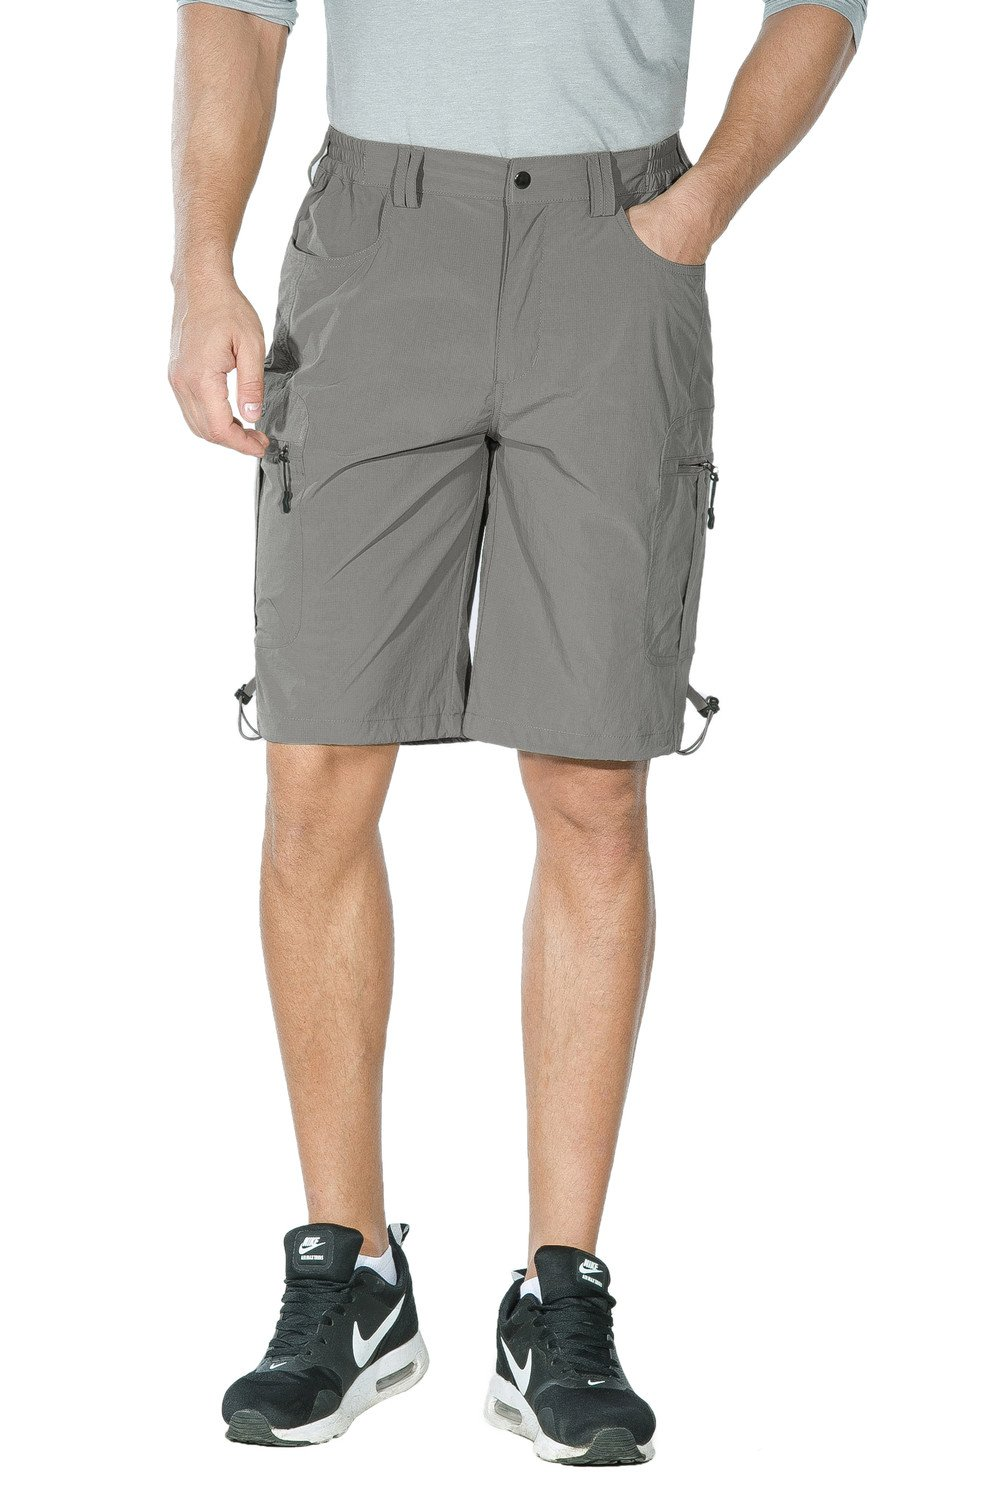 Nonwe Men's Quick Dry Outdoor Hiking Cargo Shorts 5005 Light Gray L